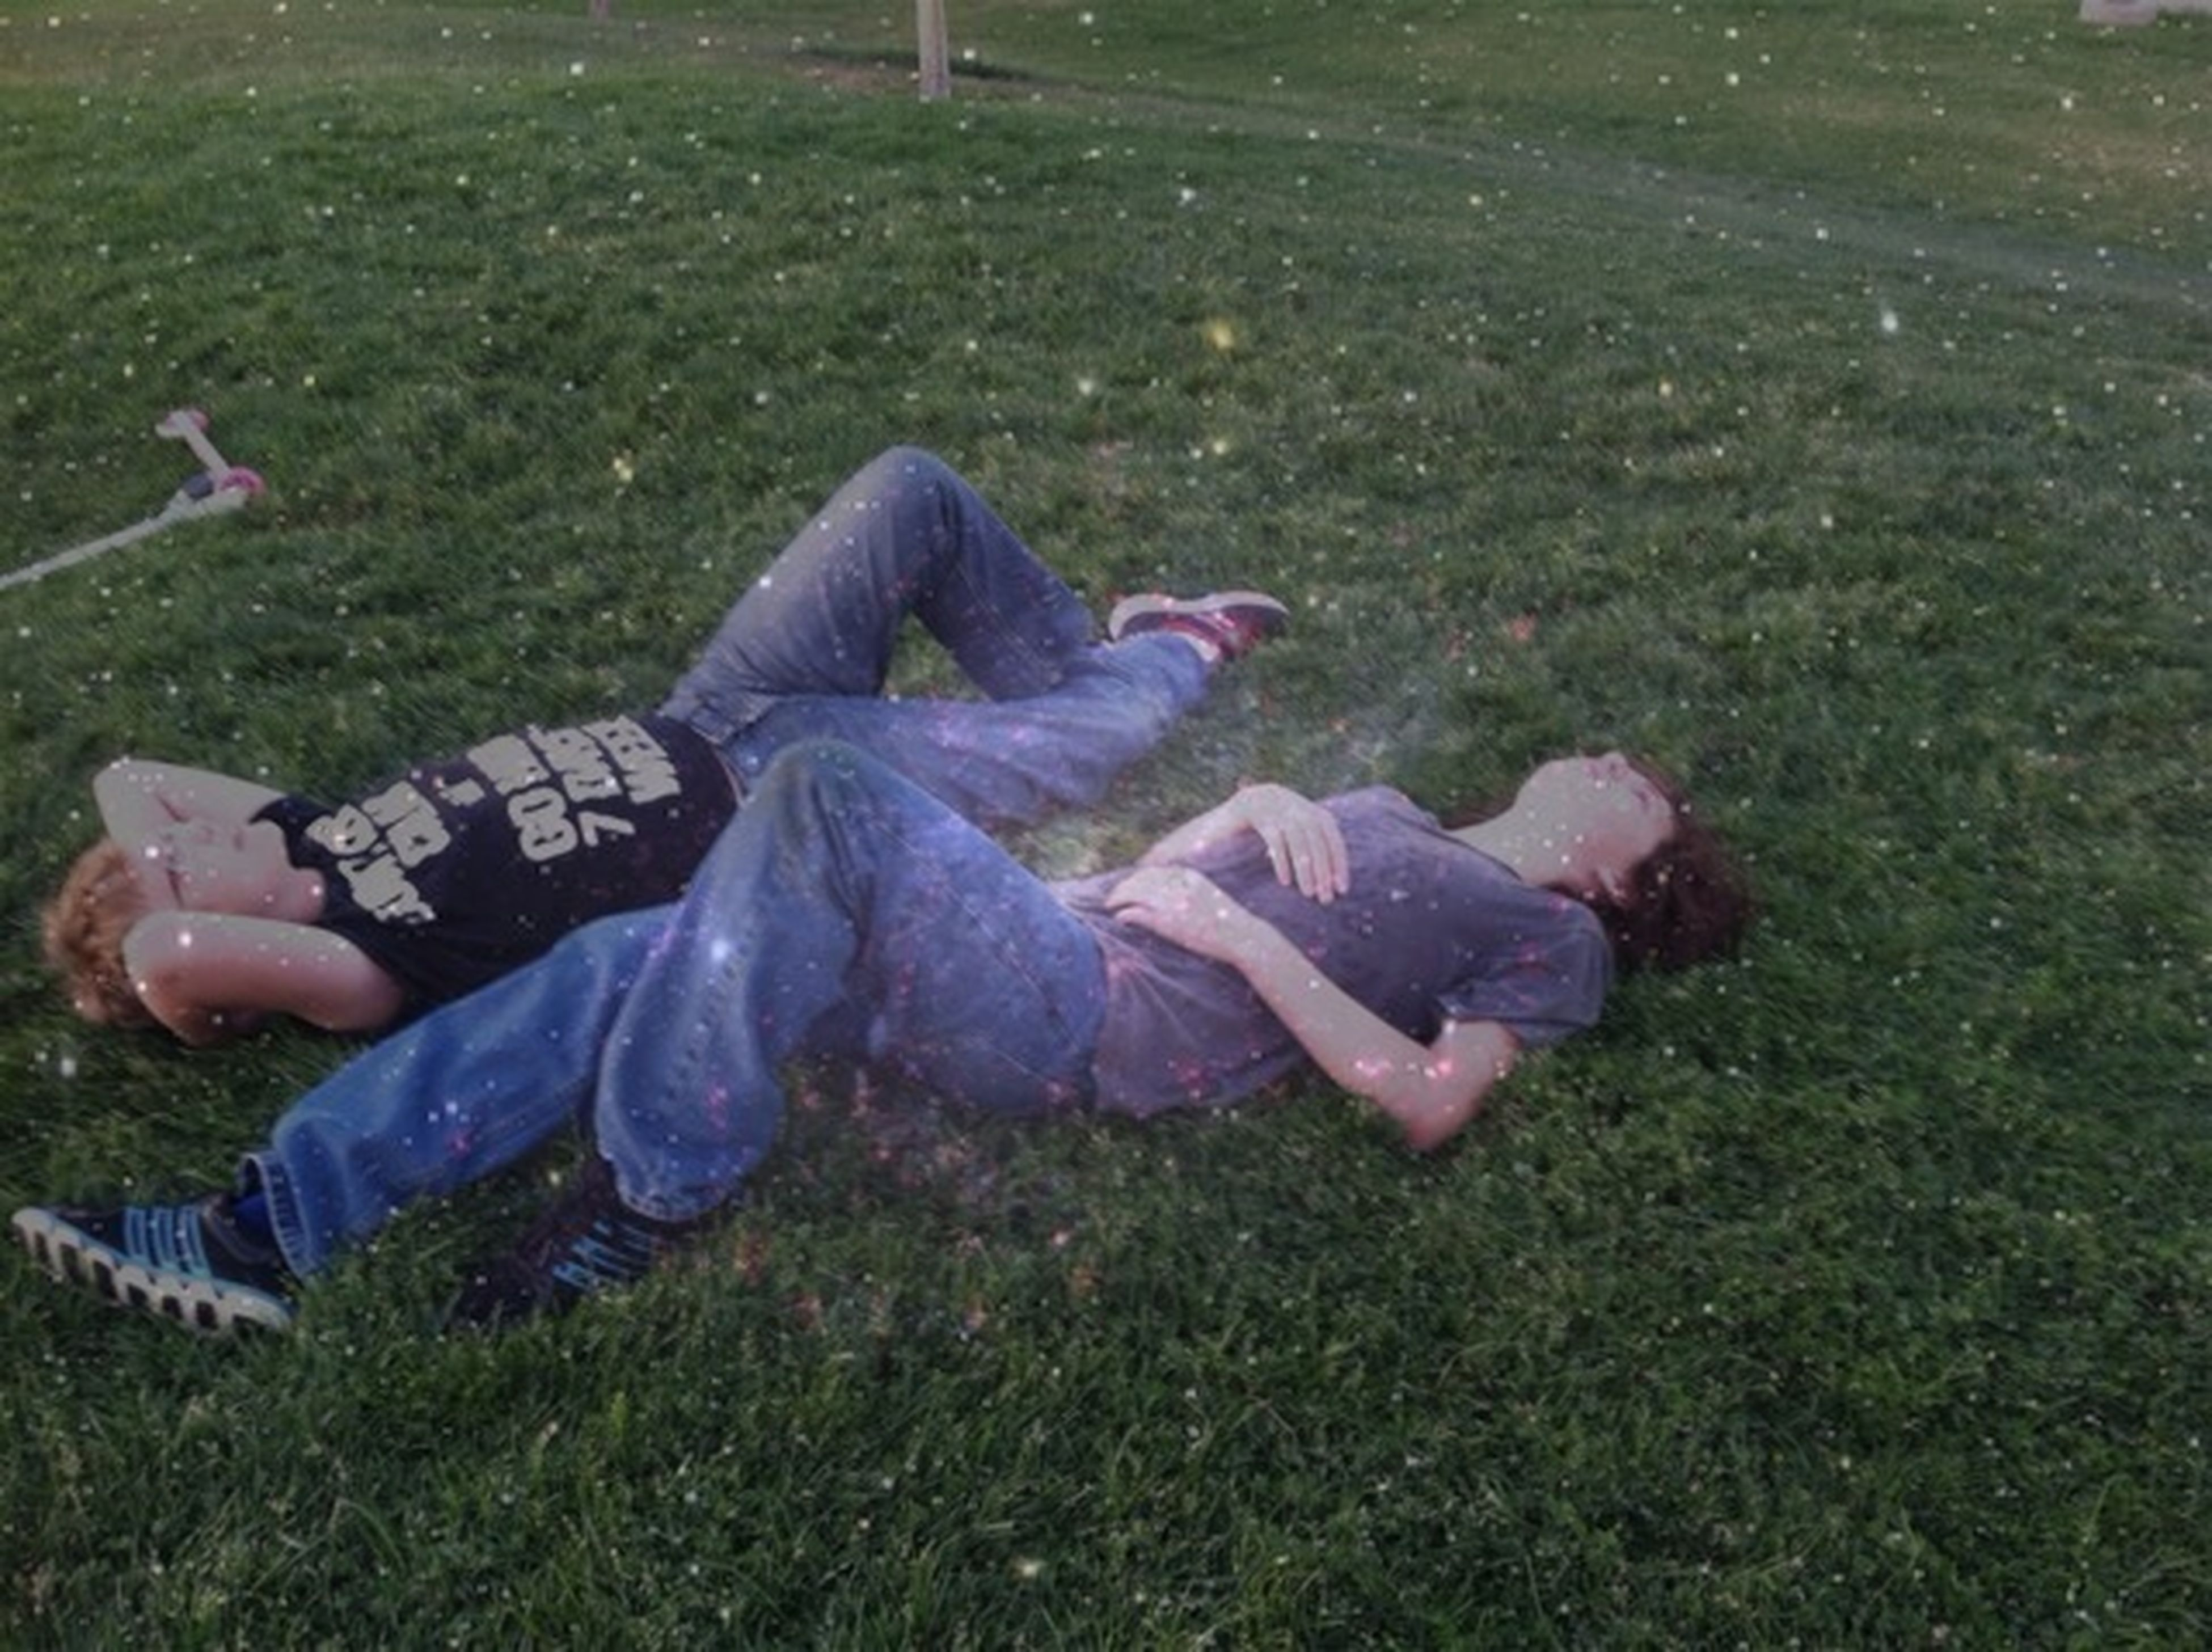 grass, field, grassy, lifestyles, leisure activity, sitting, casual clothing, green color, relaxation, men, lying down, full length, person, togetherness, day, childhood, outdoors